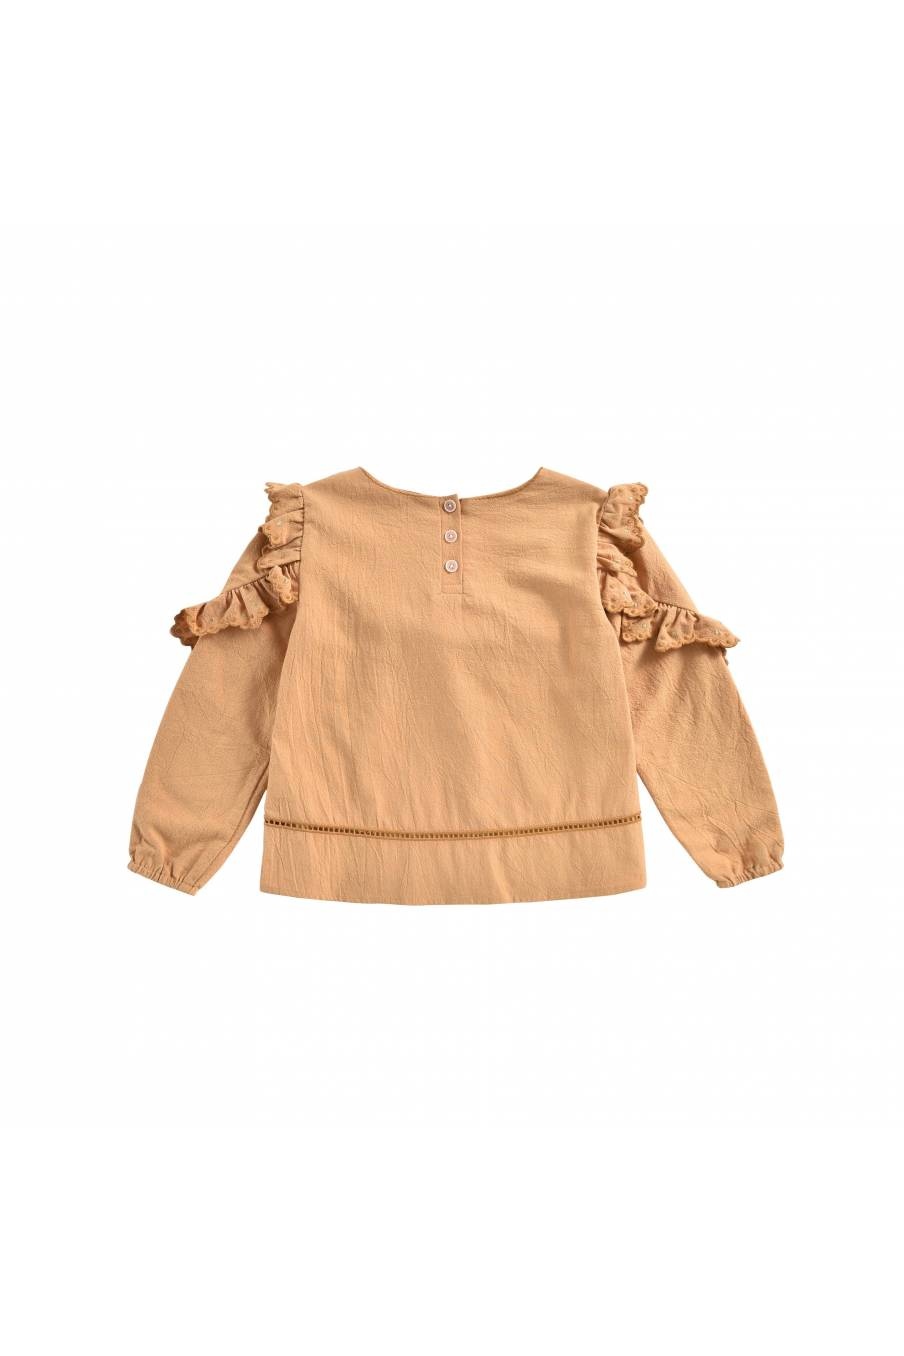 boheme chic vintage blouse bébé fille jacota spicy